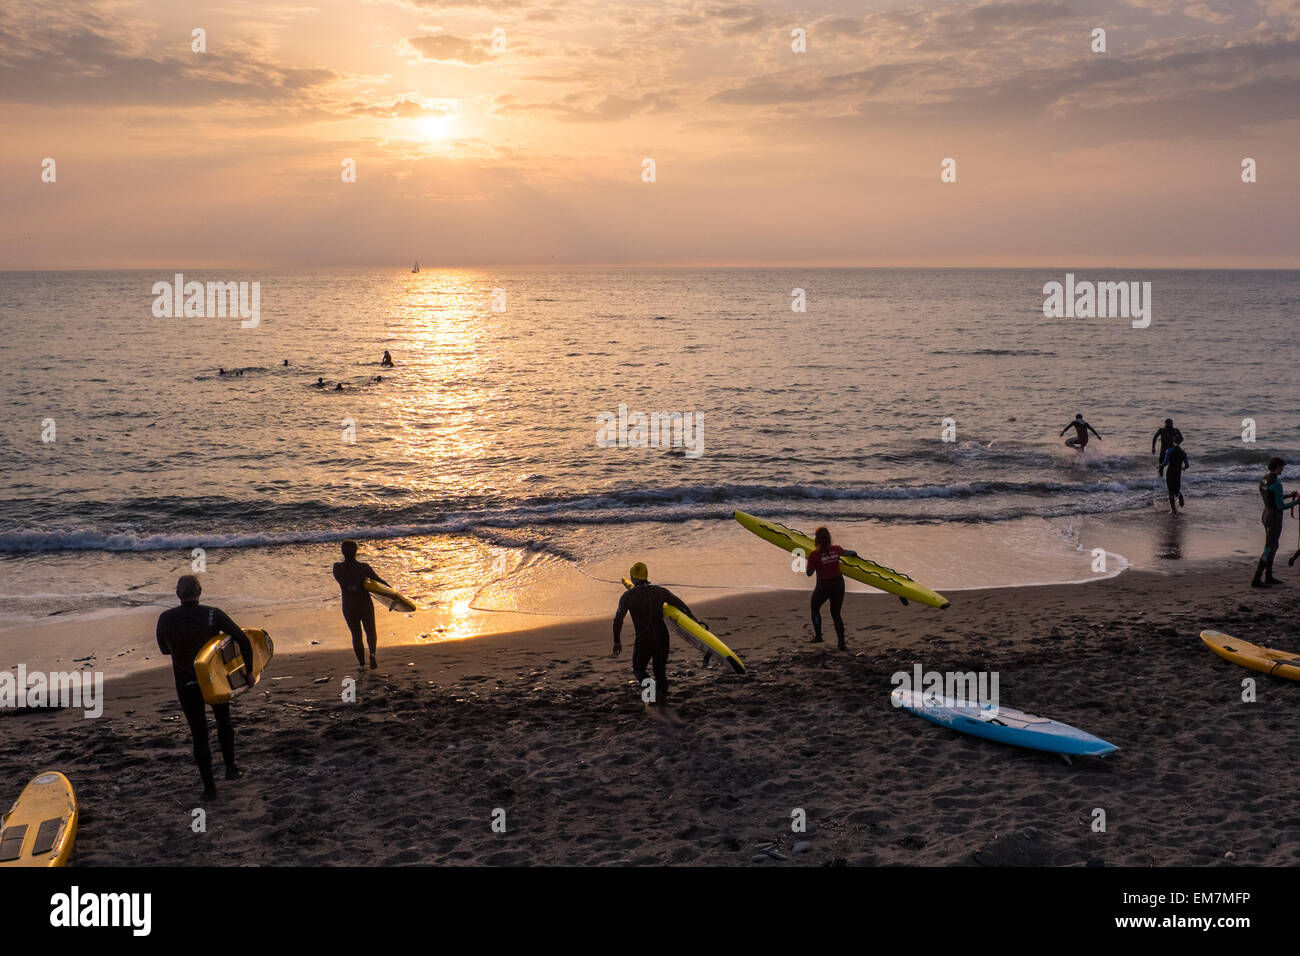 Aberystwyth, Wales, UK. 16 April 2015.  People undergoing training to qualify as RNLI lifeguards, on the beach at - Stock Image